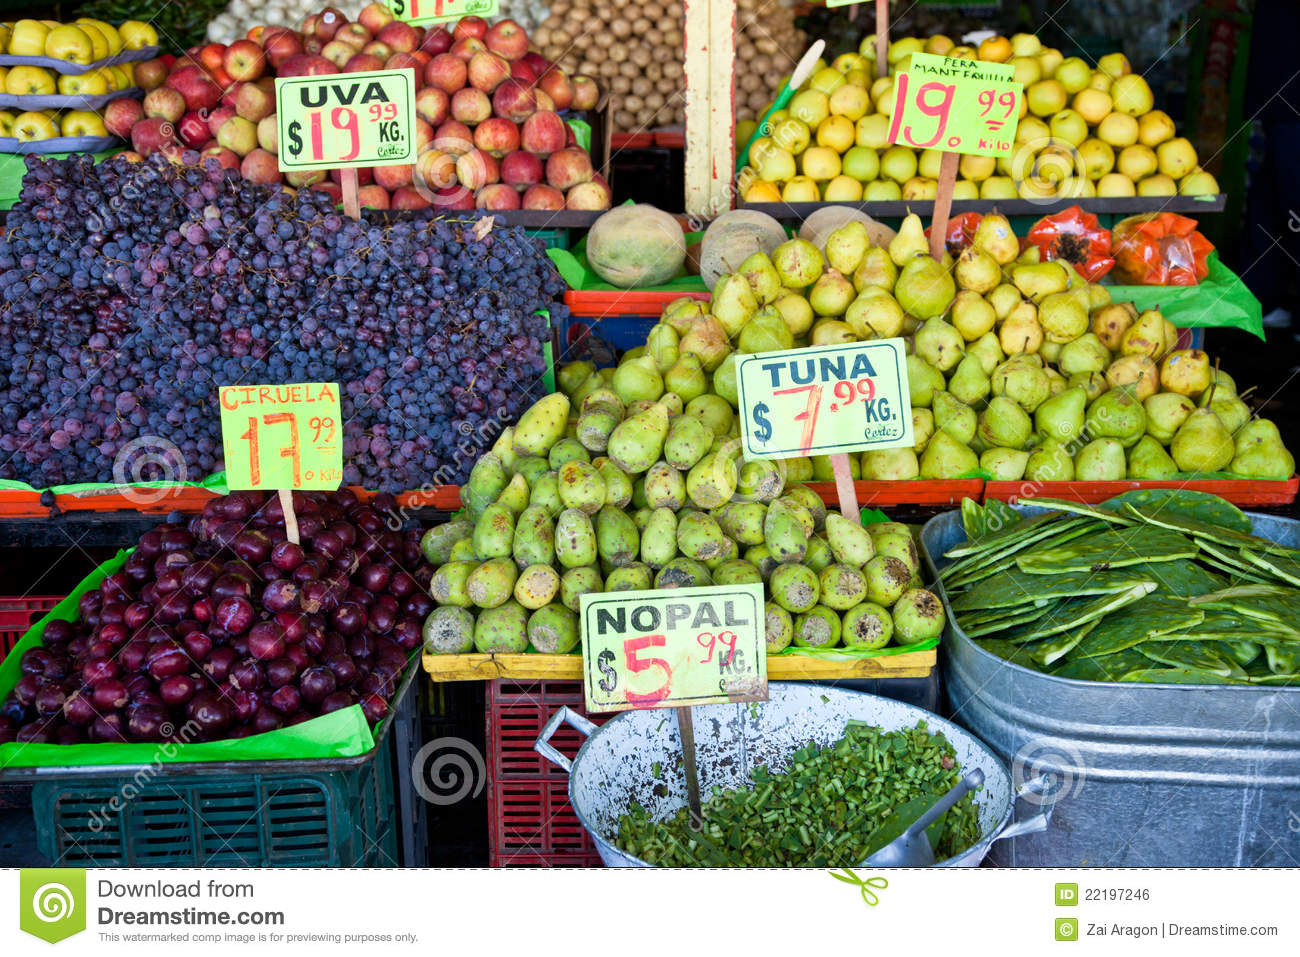 Watch 17 Fruits and Veggies to Stock Up On Now video